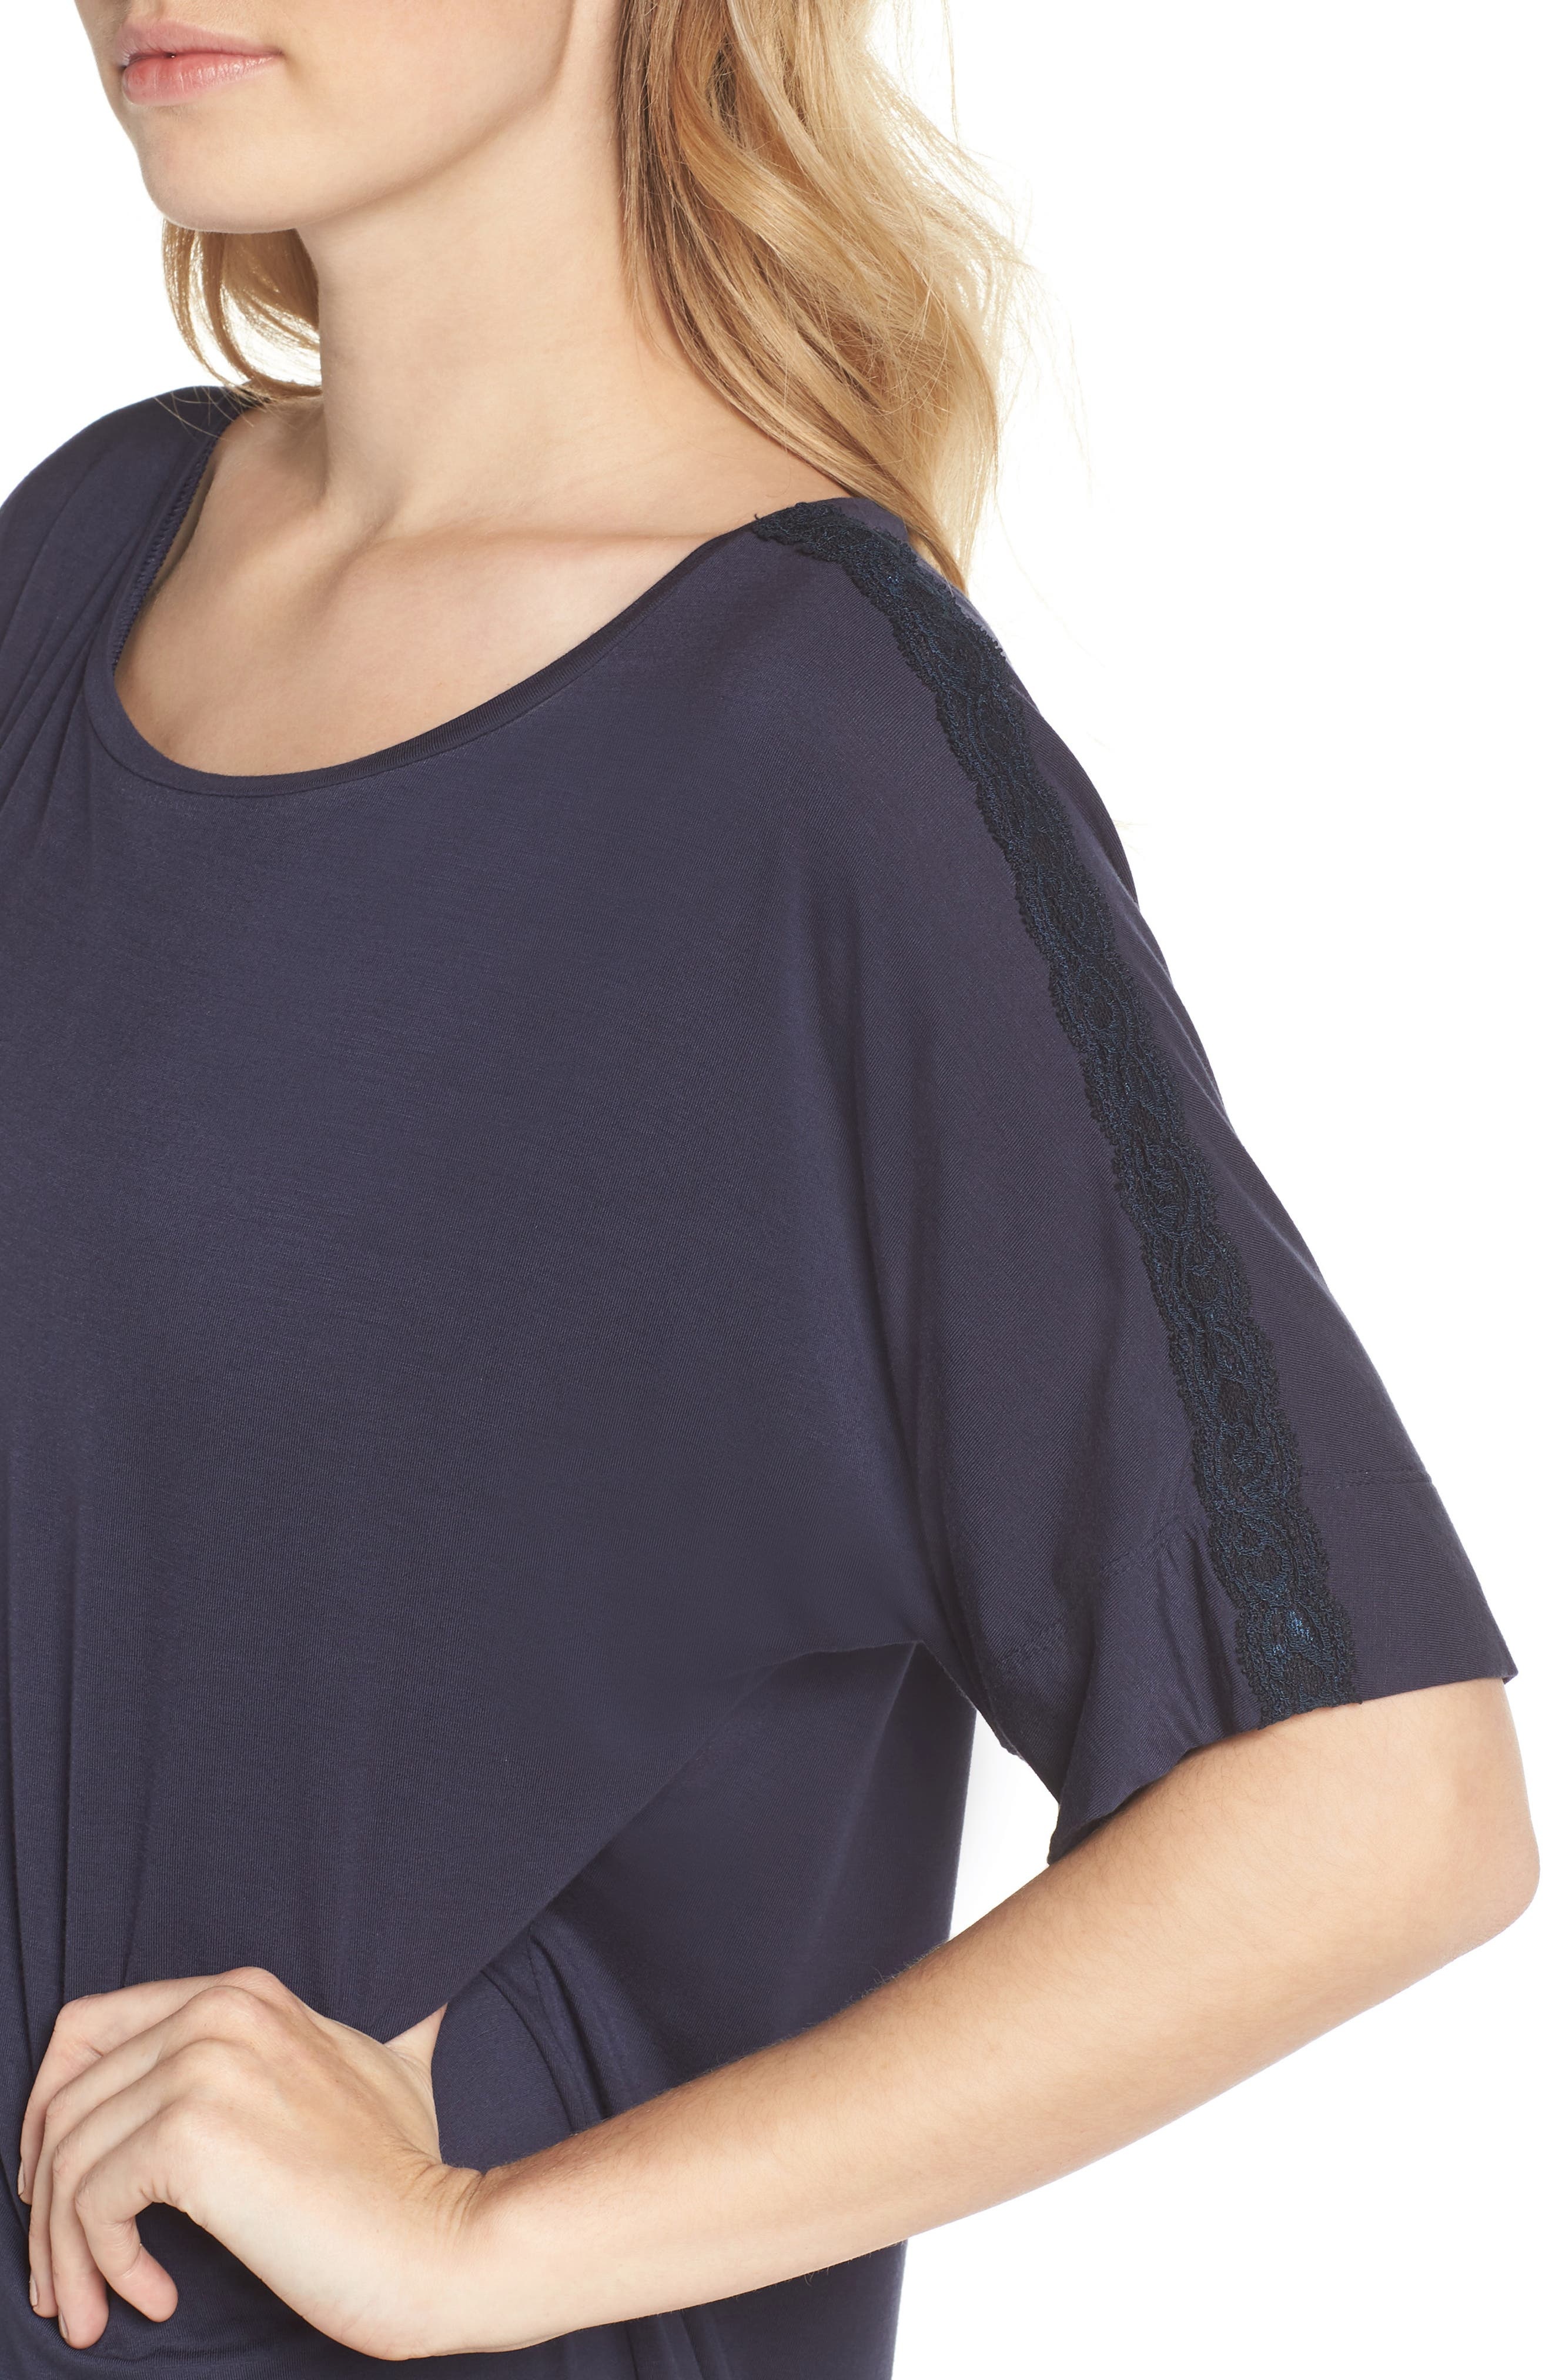 Feathers Essential Sleep Shirt,                             Alternate thumbnail 4, color,                             NIGHT BLUE